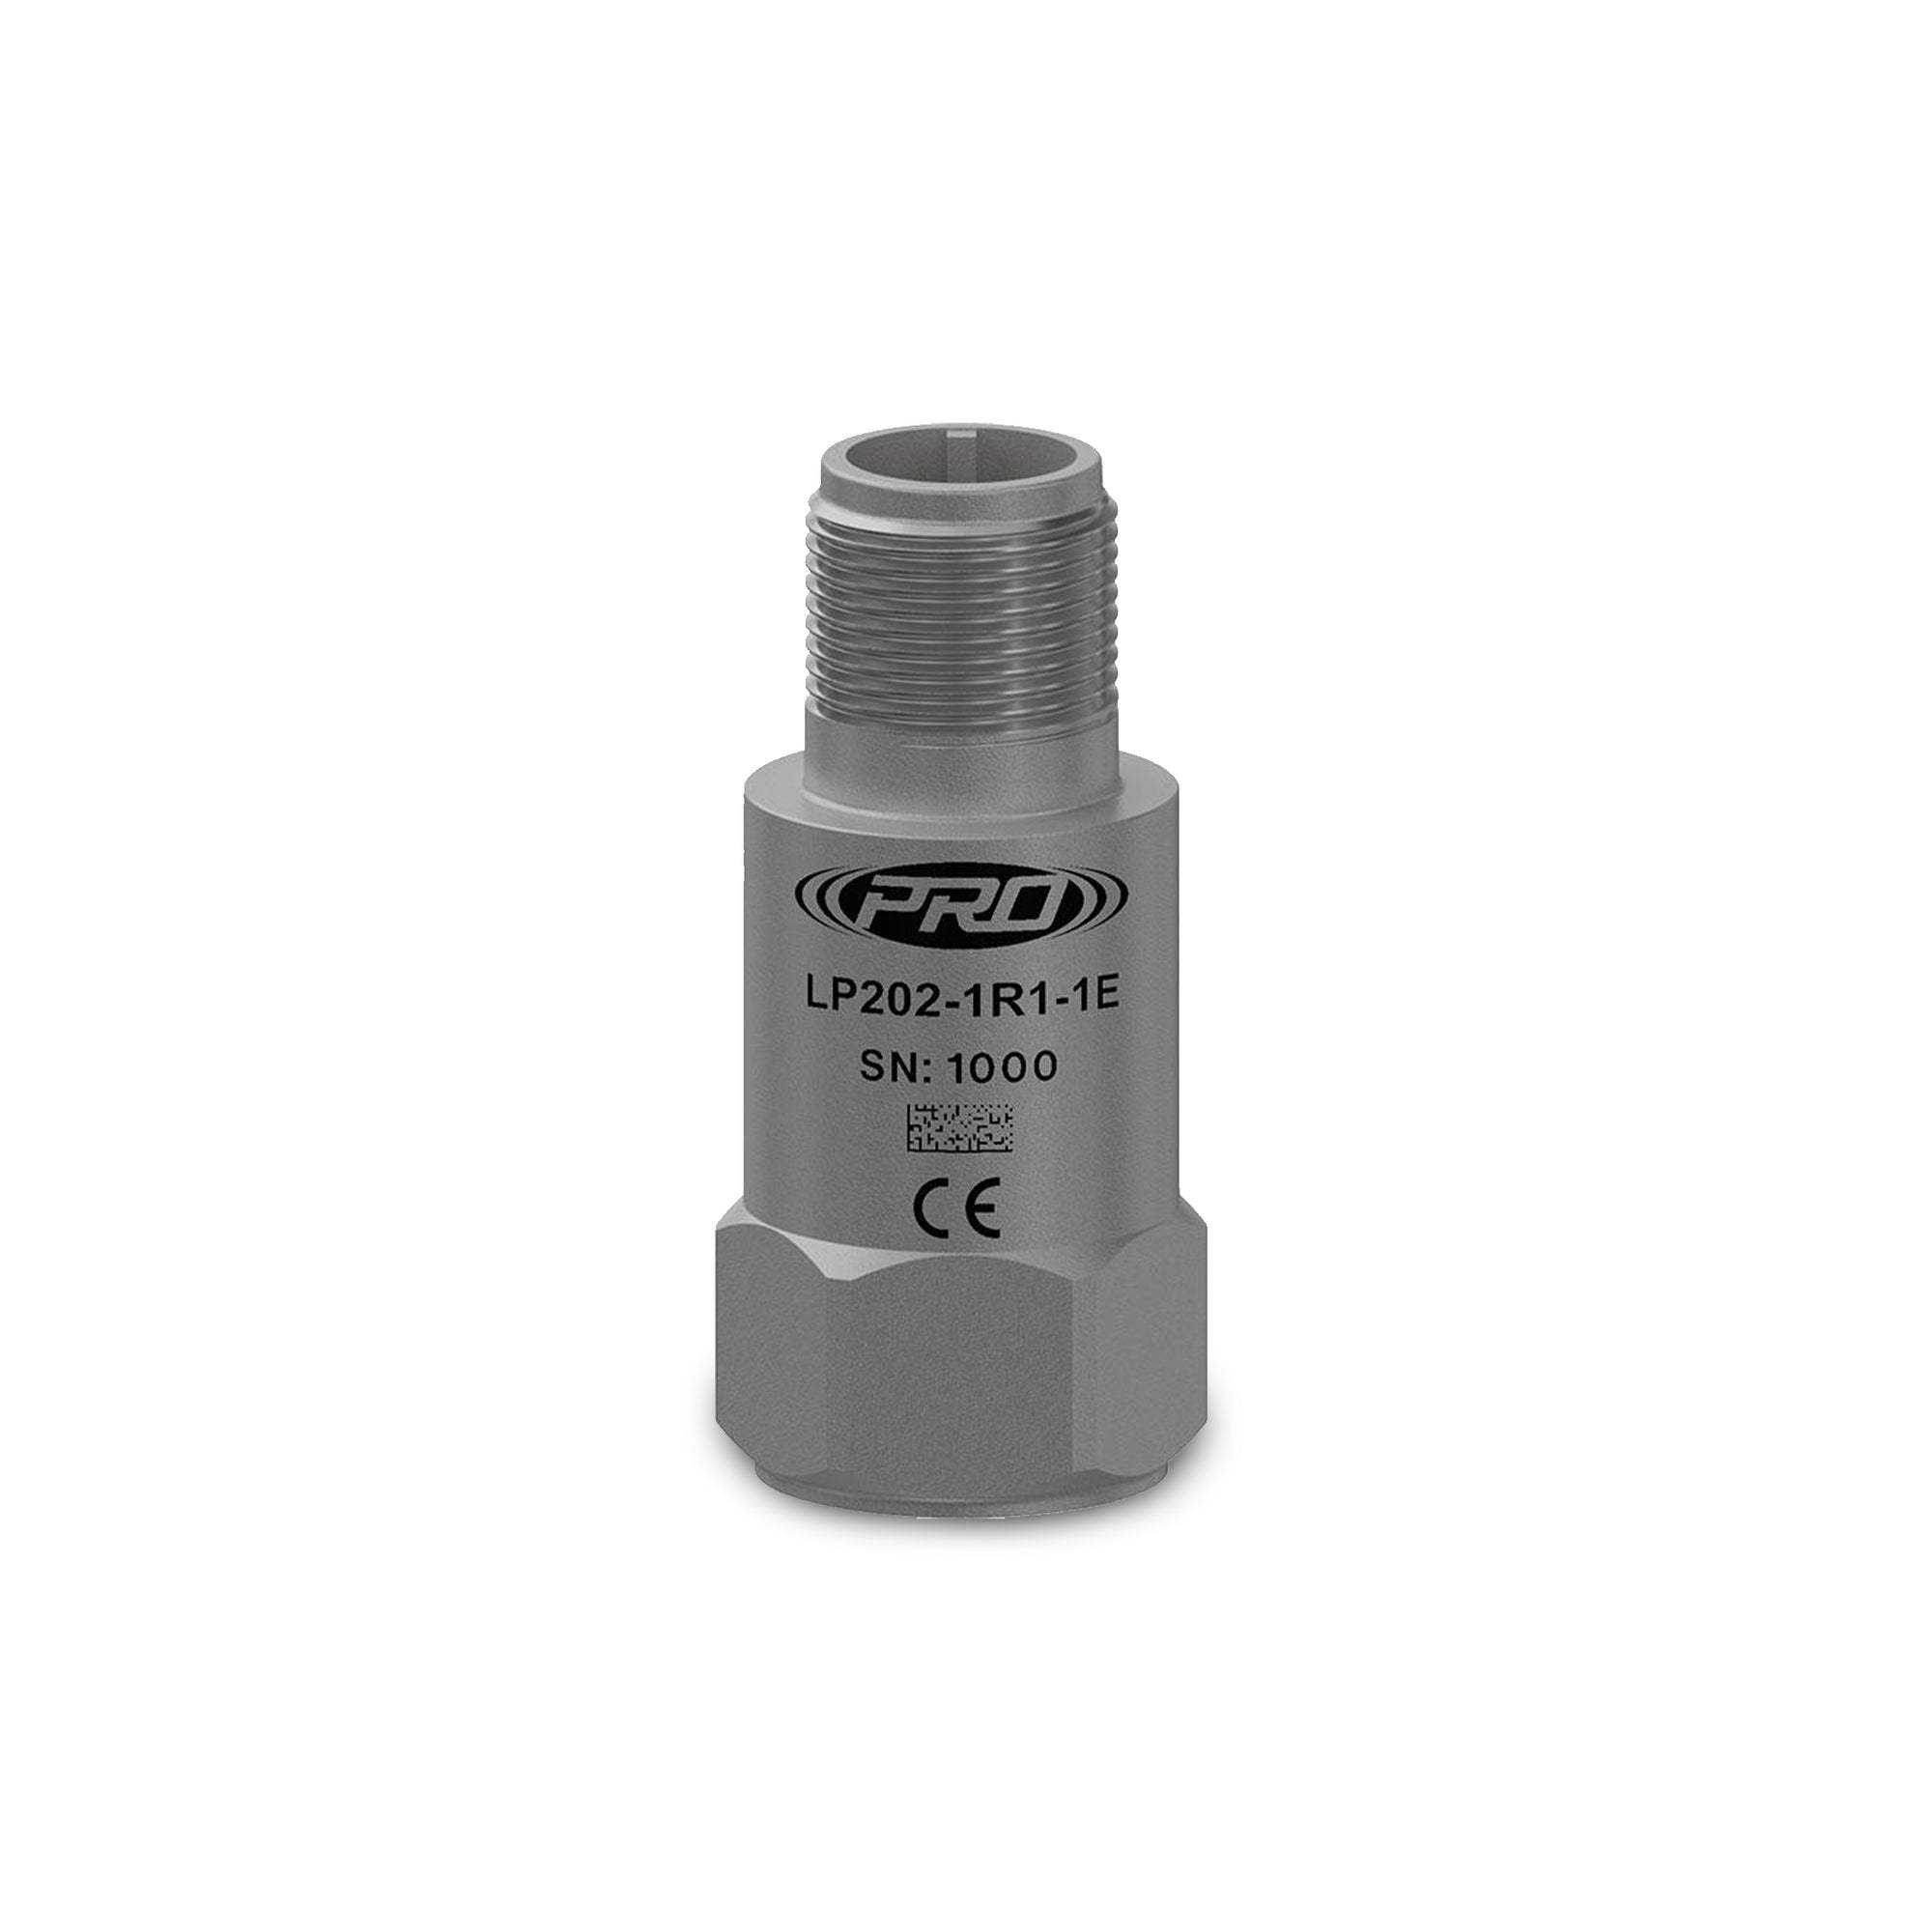 M/LP202-2R1-1E 0-50.8mm/s FS 4-20mA vibration transmitter